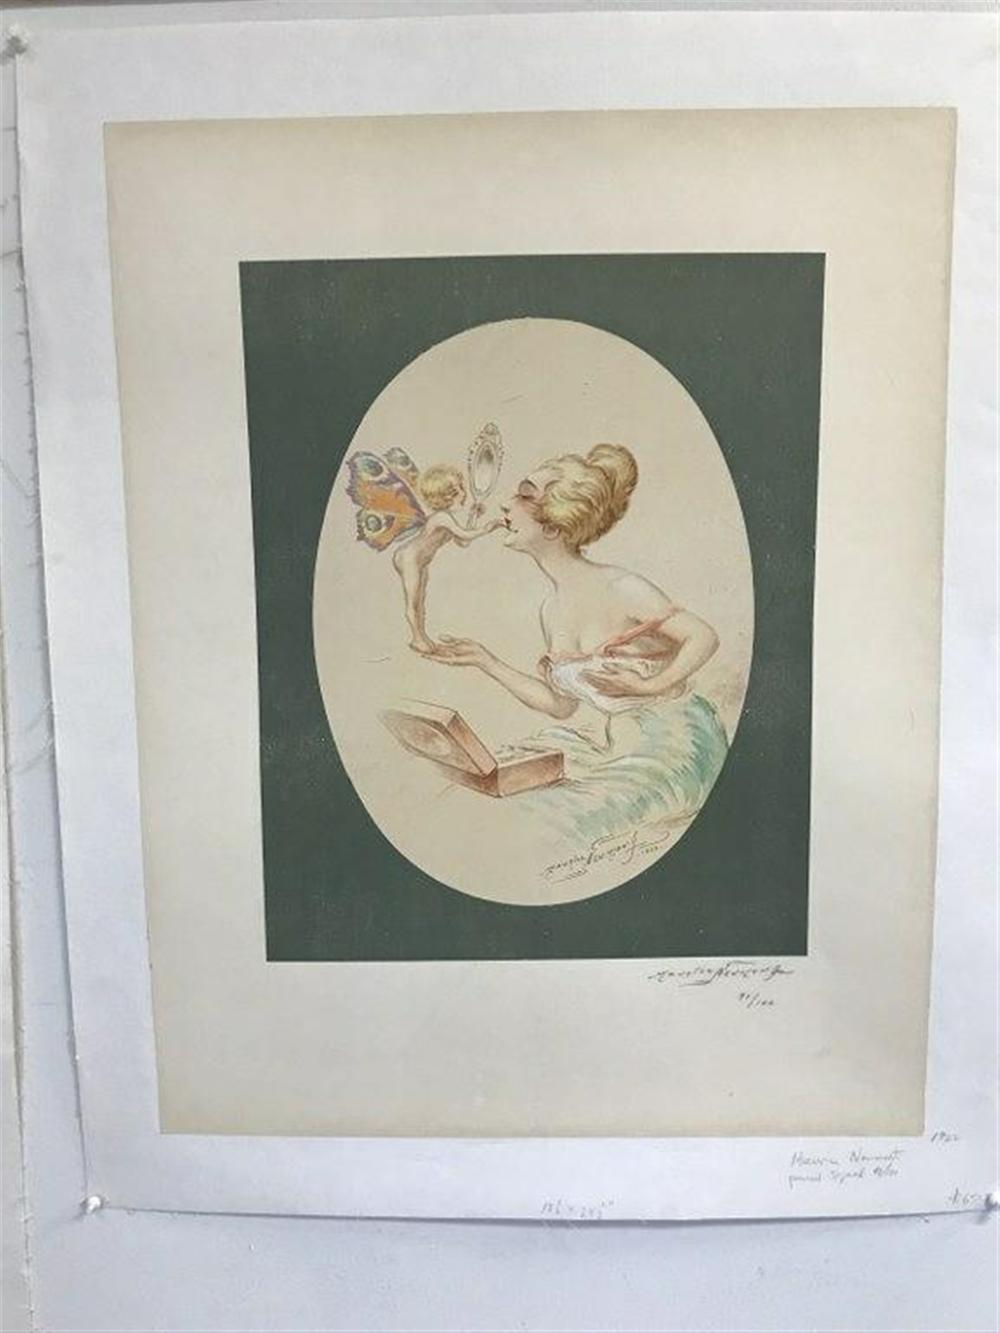 "POSTER- MAURICE NEUMONT, PENCIL SIGNED, 91/100, 1922, LINEN BACKED, POSTER MEASURES 24 1/2"" X 19 1/2""."